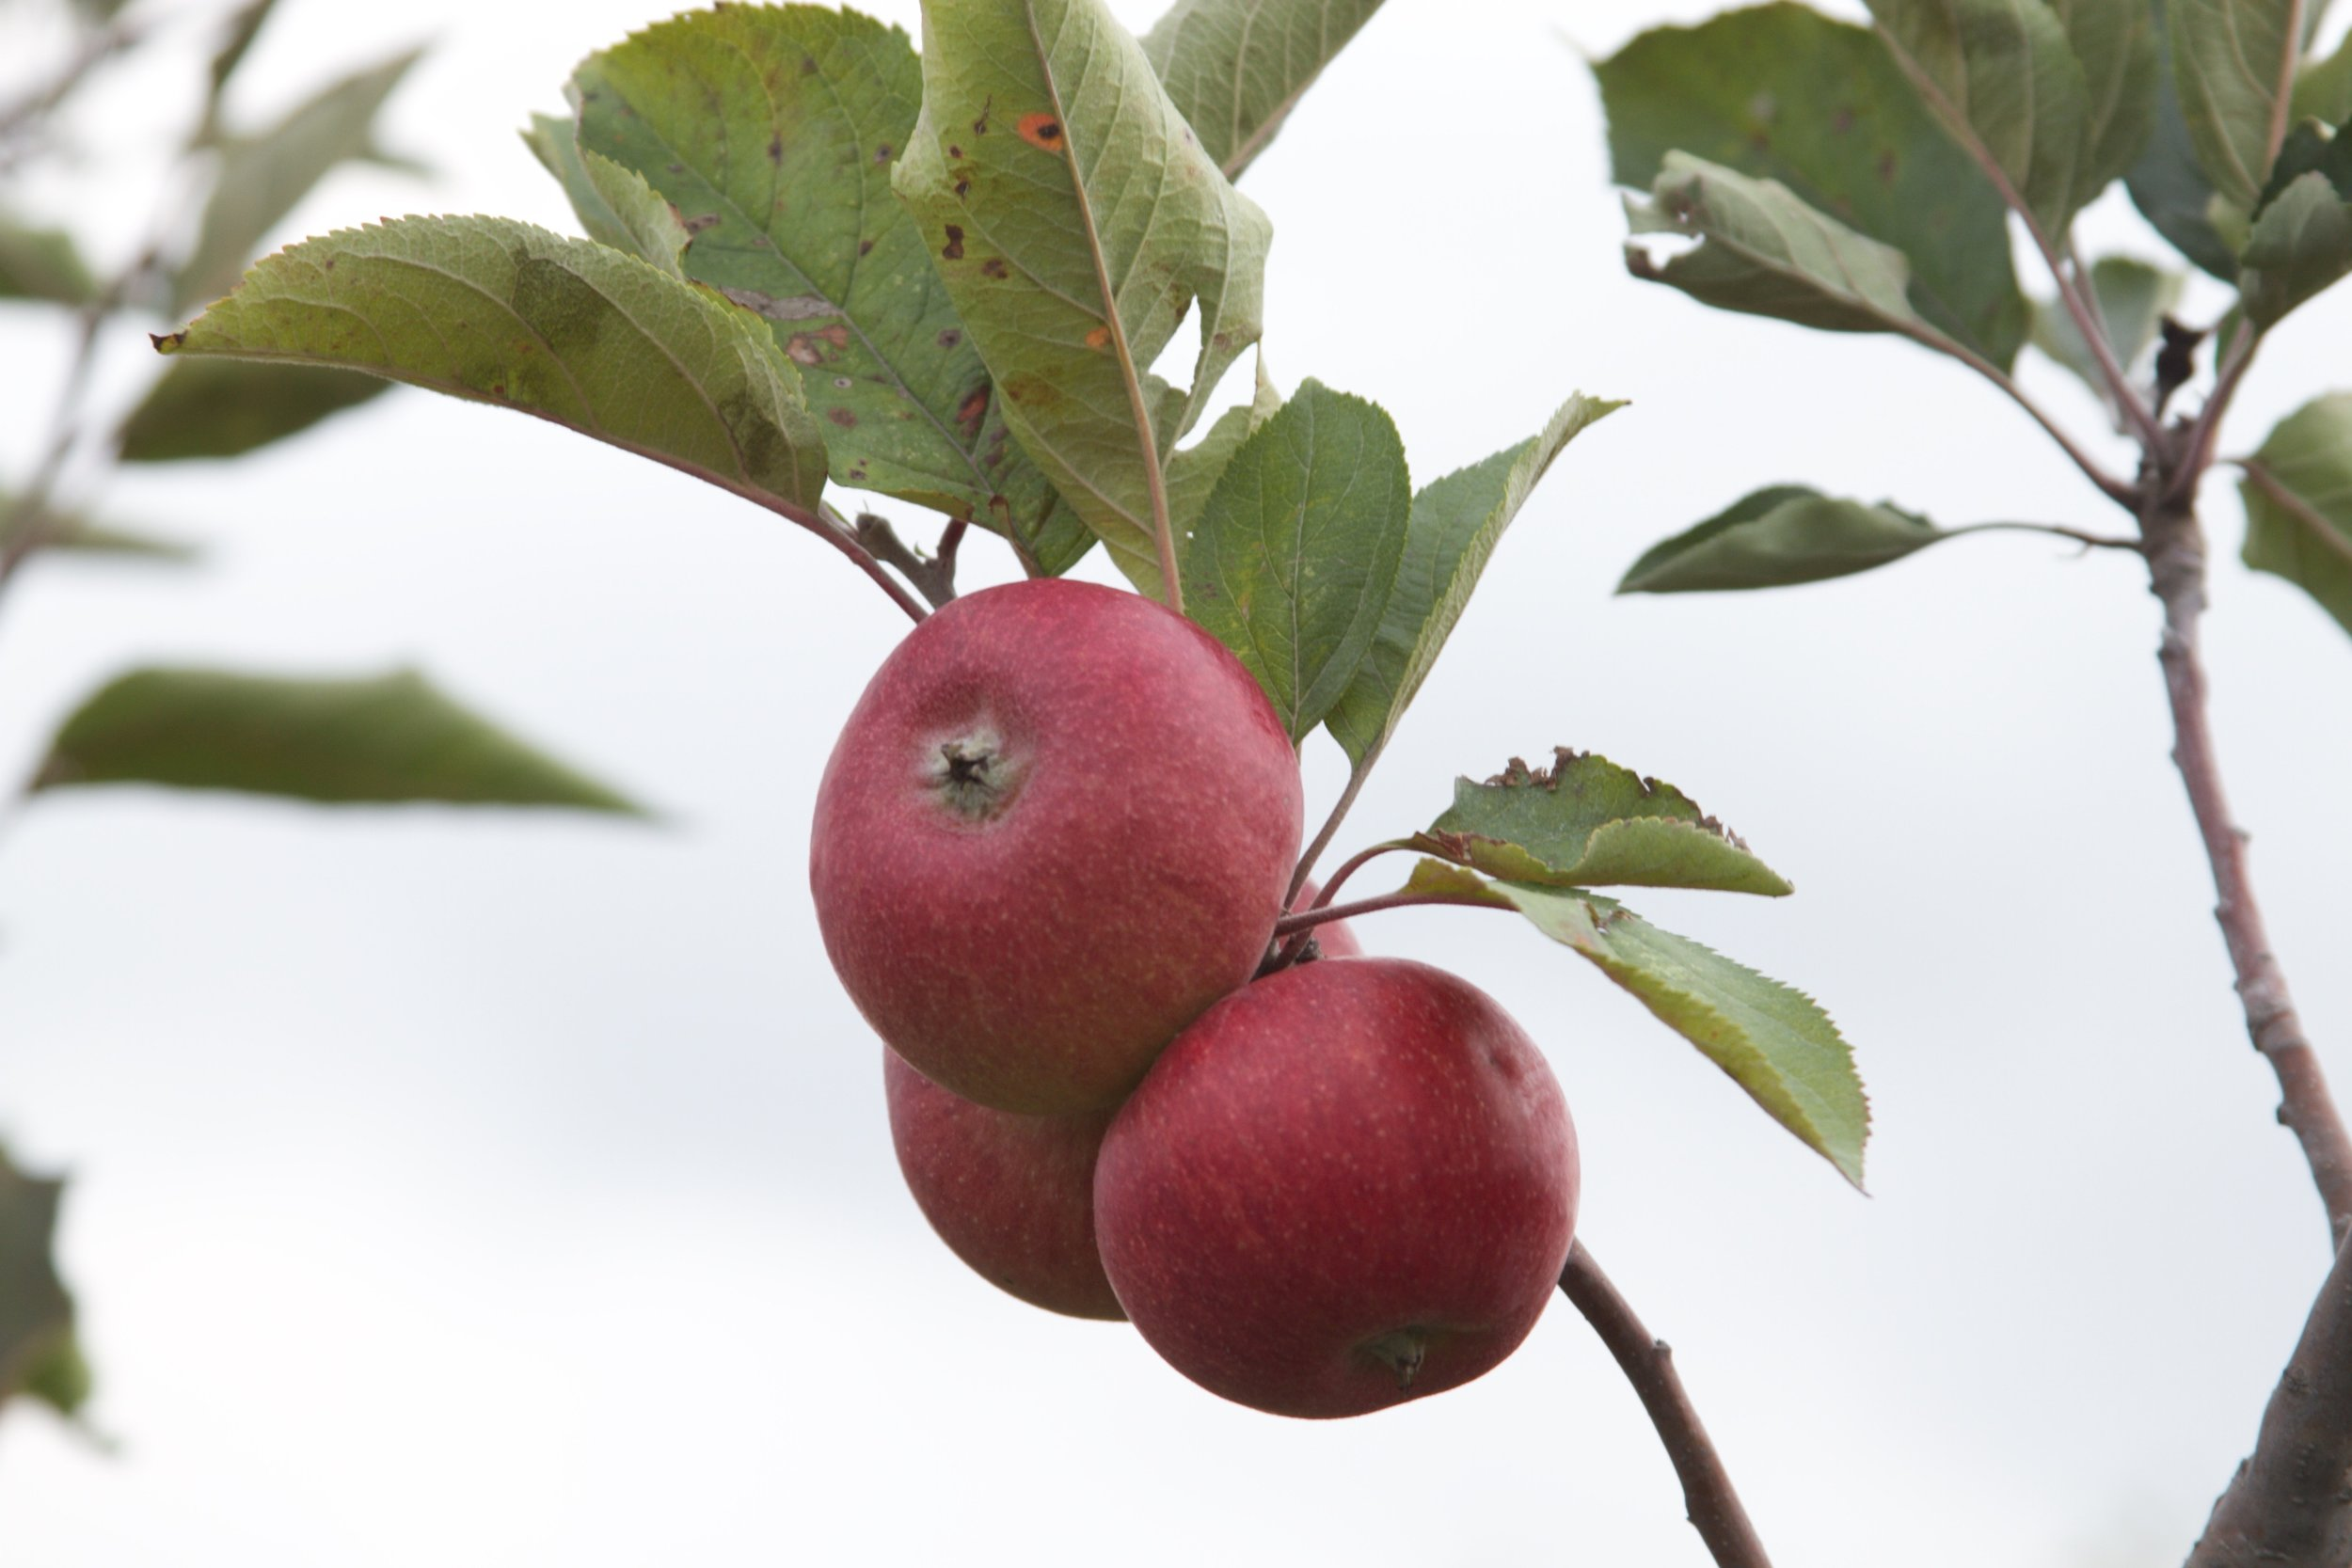 Cider apples are smaller, but have different, more aromatic flavors.